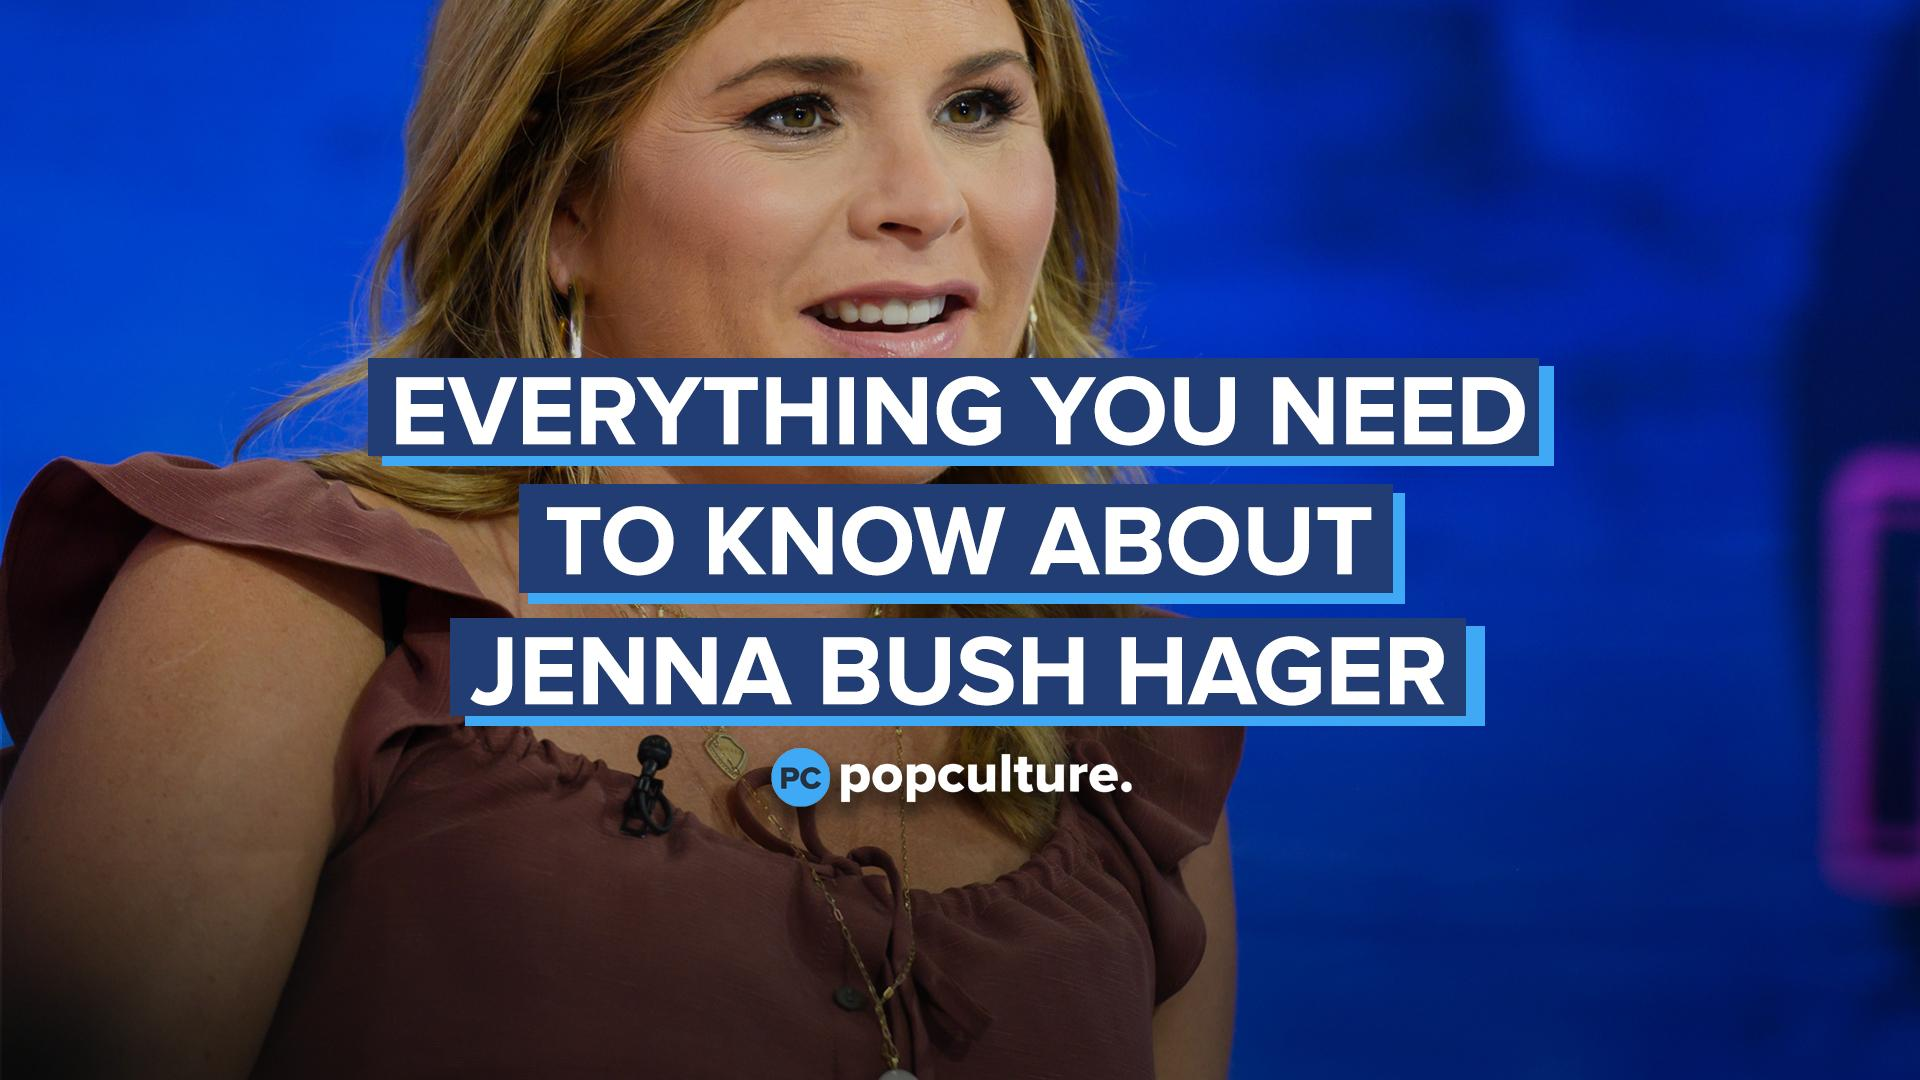 Everything You Need to Know About Jenna Bush Hager screen capture